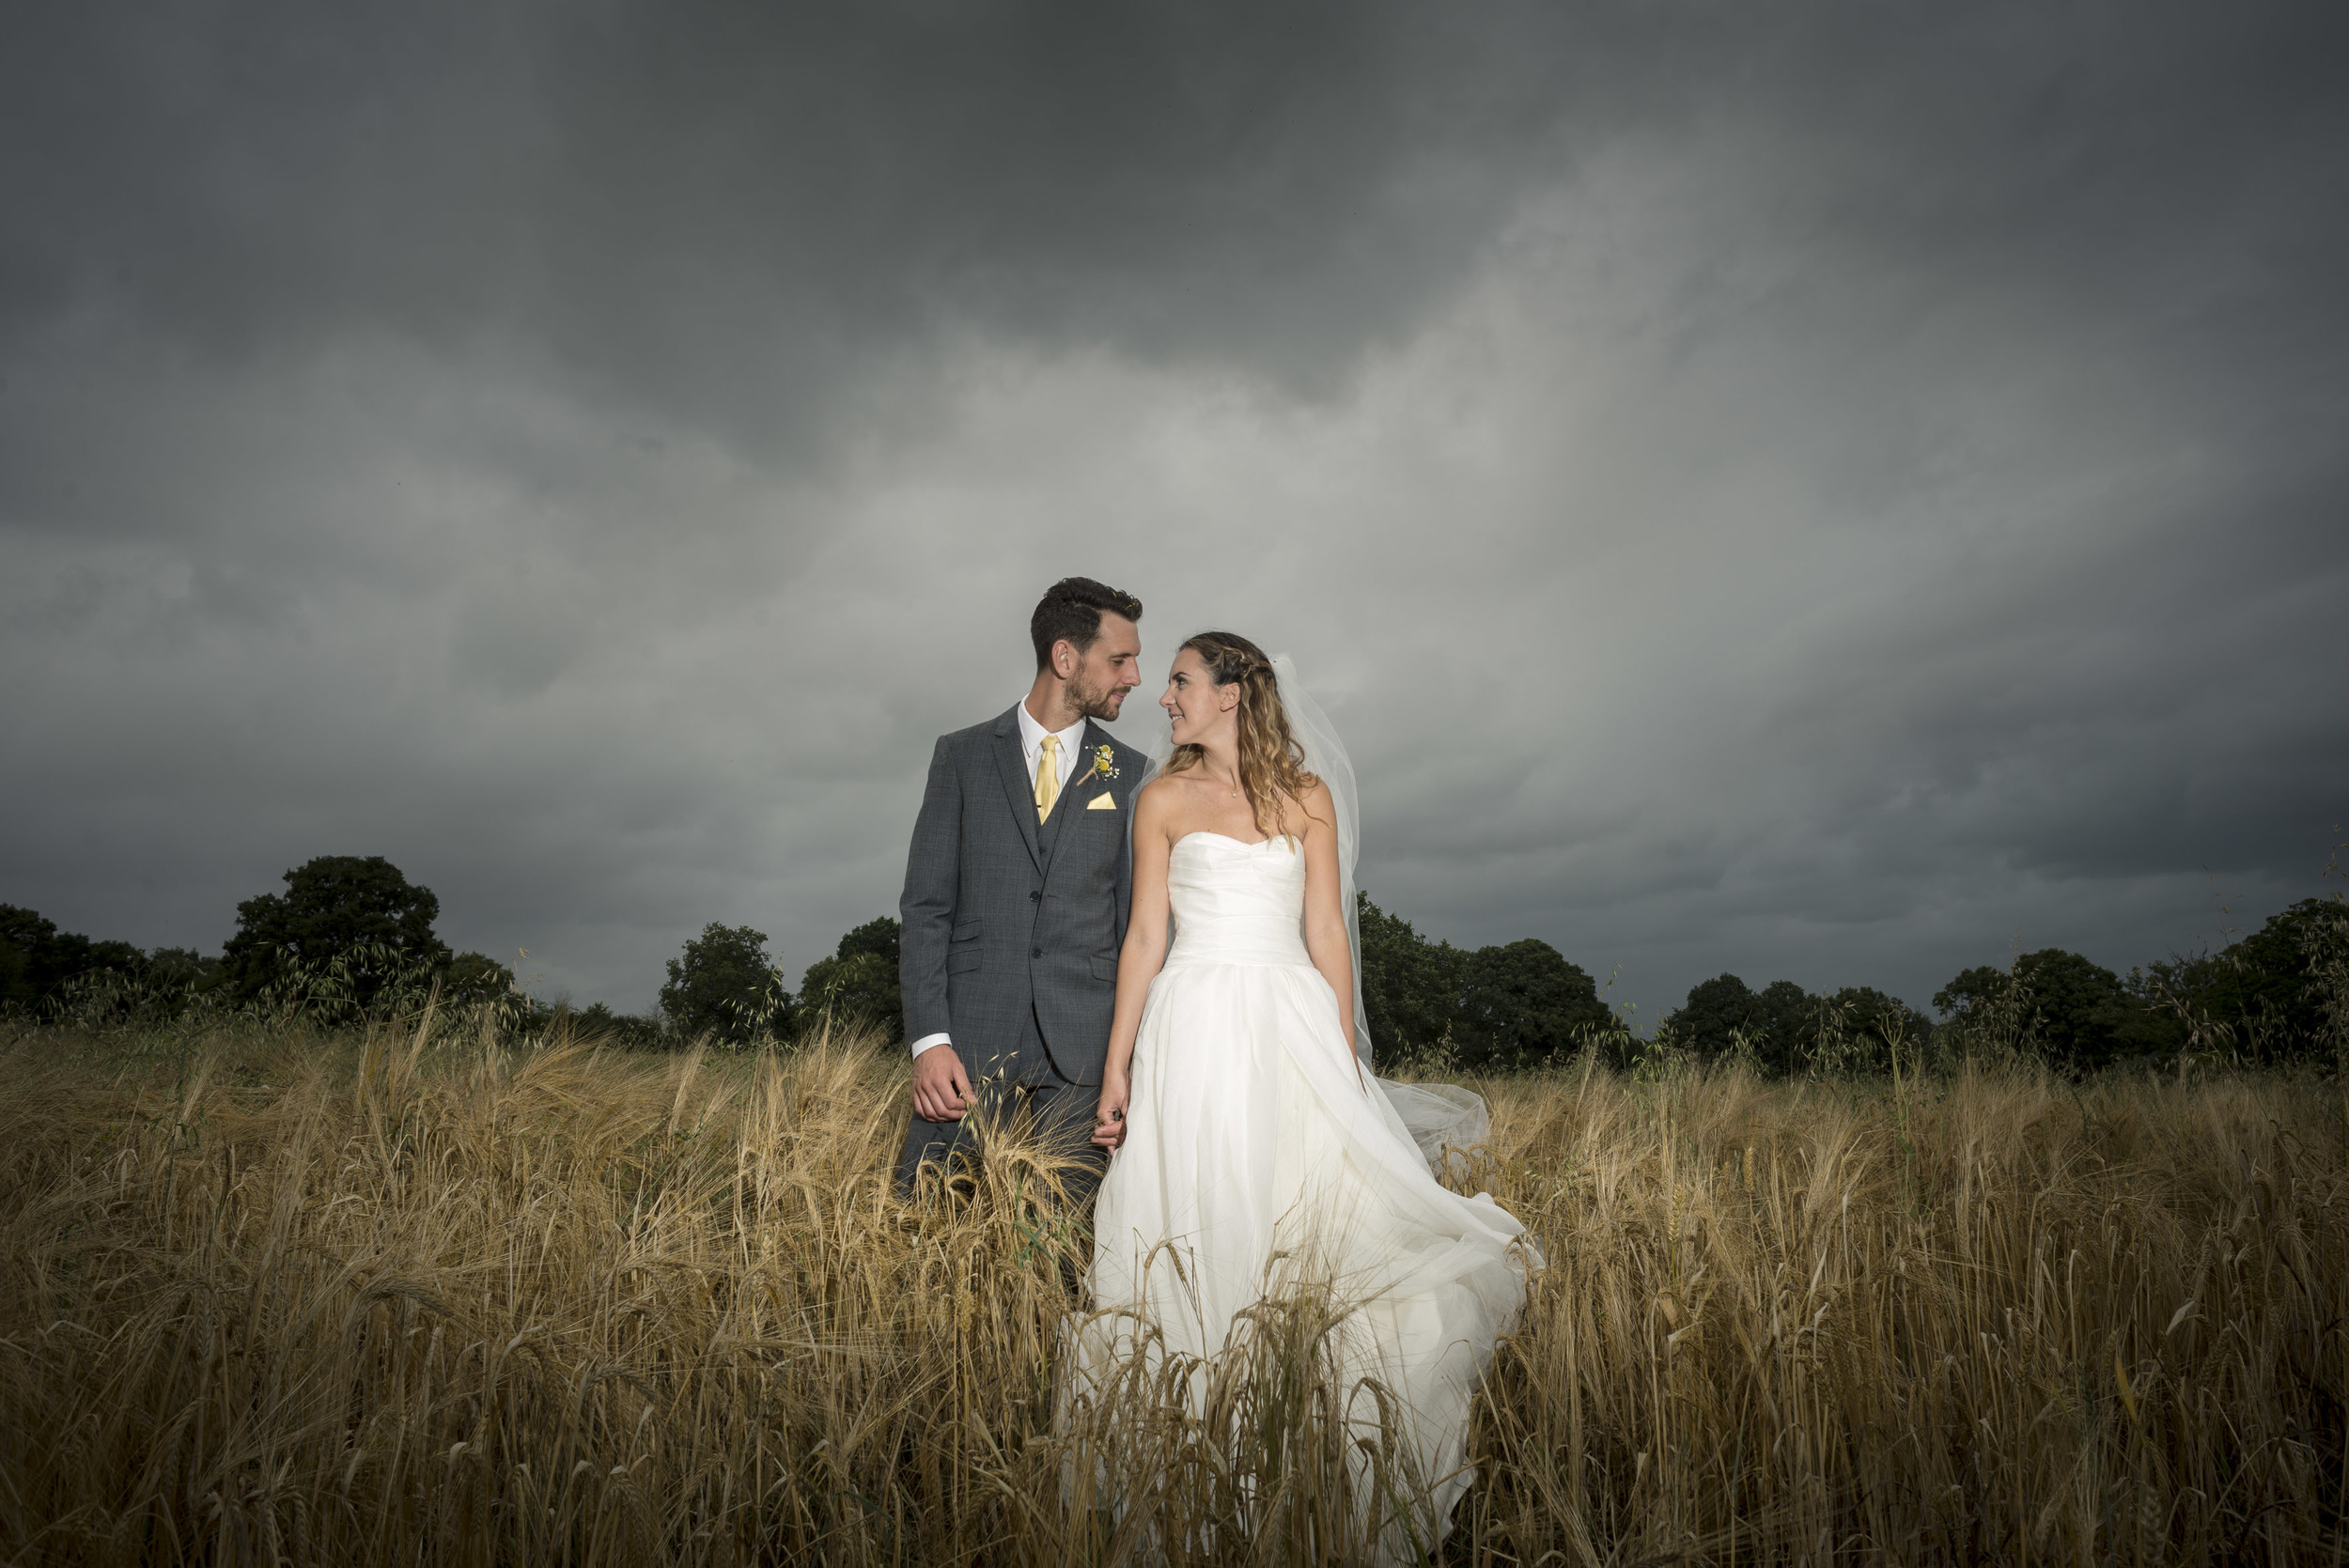 rotherwick-wedding-7.jpg